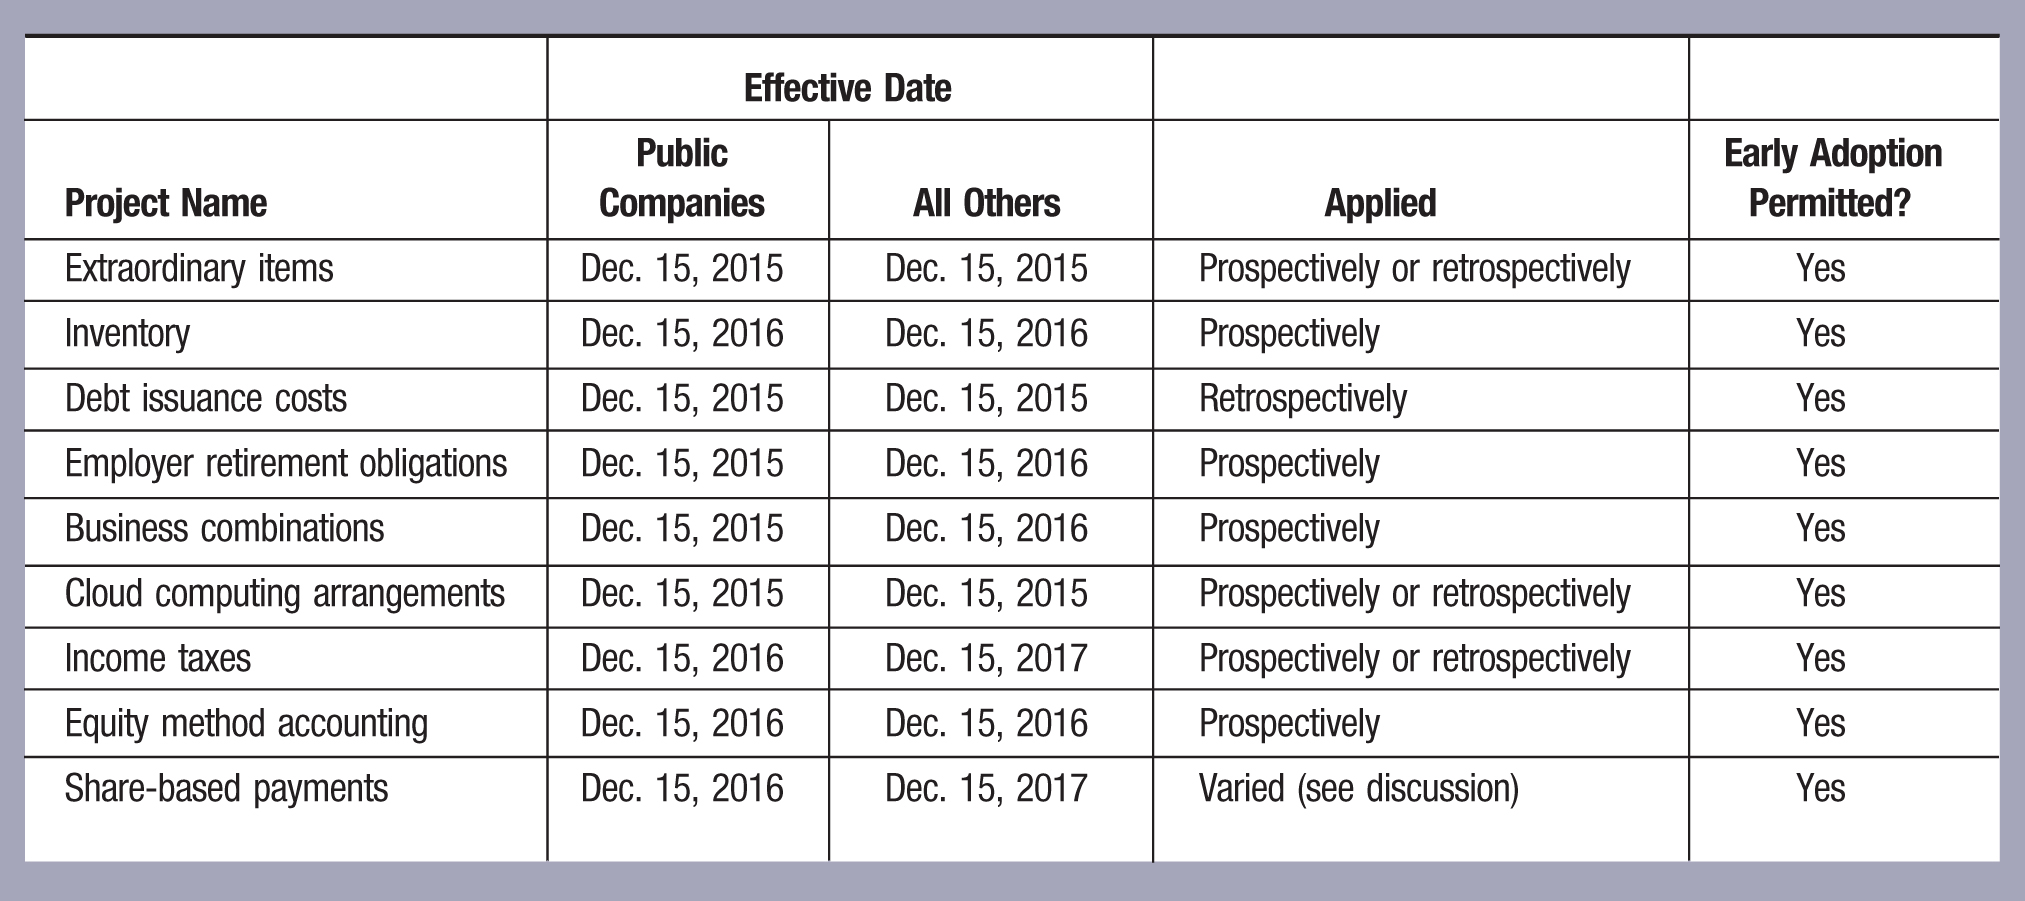 Effective Date Project Name; Public Companies; All Others; Applied; Early Adoption Permitted? Extraordinary items; Dec. 15, 2015; Dec. 15, 2015; Prospectively or retrospectively; Yes Inventory; Dec. 15, 2016; Dec. 15, 2016; Prospectively; Yes Debt issuance costs; Dec. 15, 2015; Dec. 15, 2015; Retrospectively; Yes Employer retirement obligations; Dec. 15, 2015; Dec. 15, 2016; Prospectively; Yes Business combinations; Dec. 15, 2015; Dec. 15, 2016; Prospectively; Yes Cloud computing arrangements; Dec. 15, 2015; Dec. 15, 2015; Prospectively or retrospectively; Yes Income taxes; Dec. 15, 2016; Dec. 15, 2017; Prospectively or retrospectively; Yes Equity method accounting; Dec. 15, 2016; Dec. 15, 2016; Prospectively; Yes Share-based payments; Dec. 15, 2016; Dec. 15, 2017; Varied (see discussion); Yes